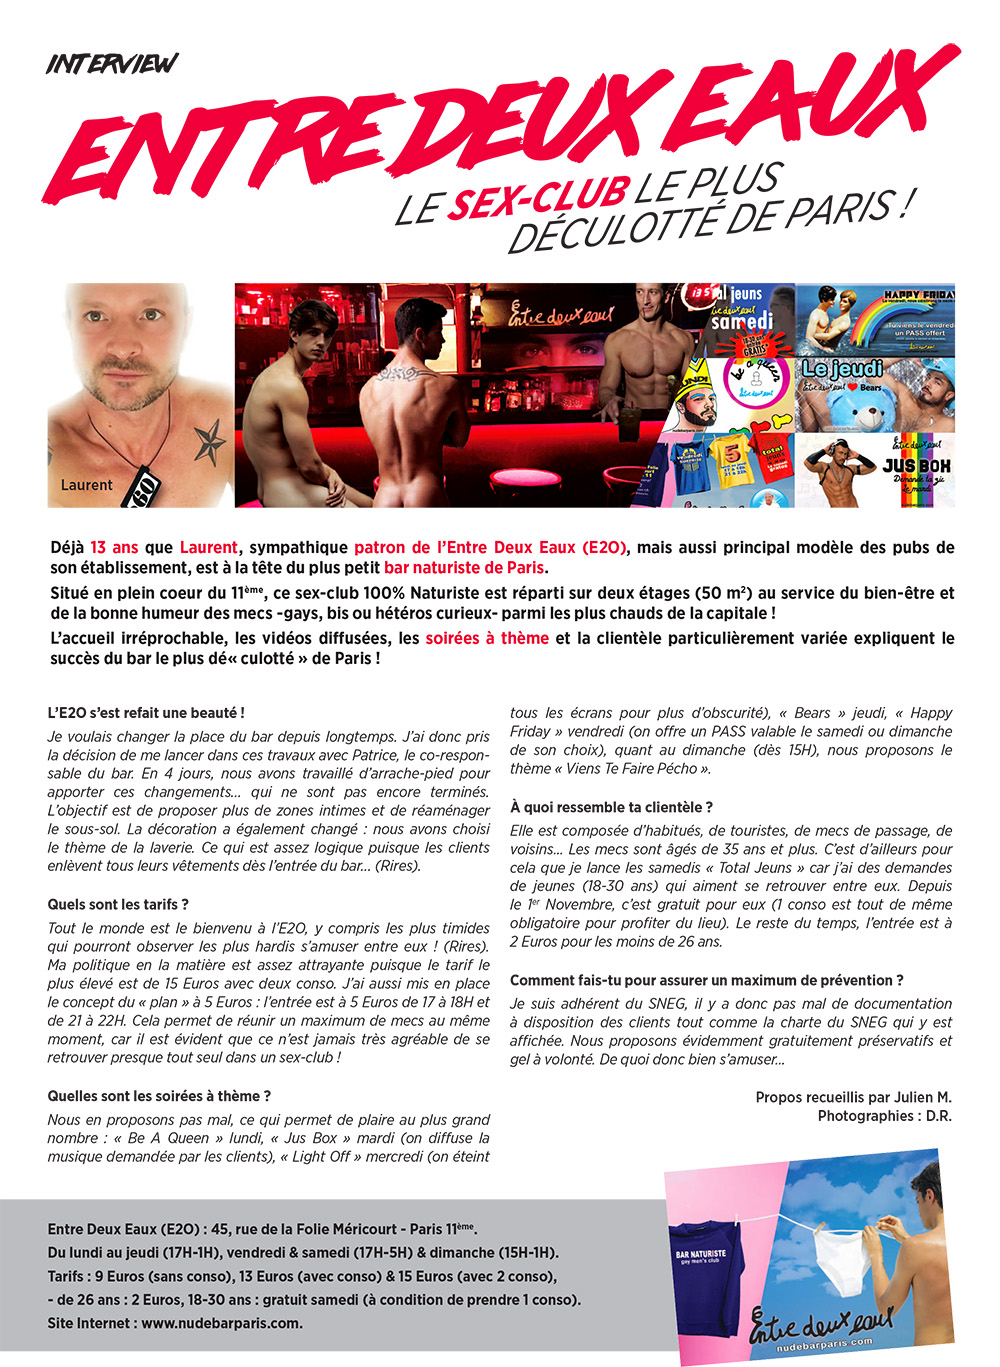 web-article-sex-bar-paris-p entre2eaux